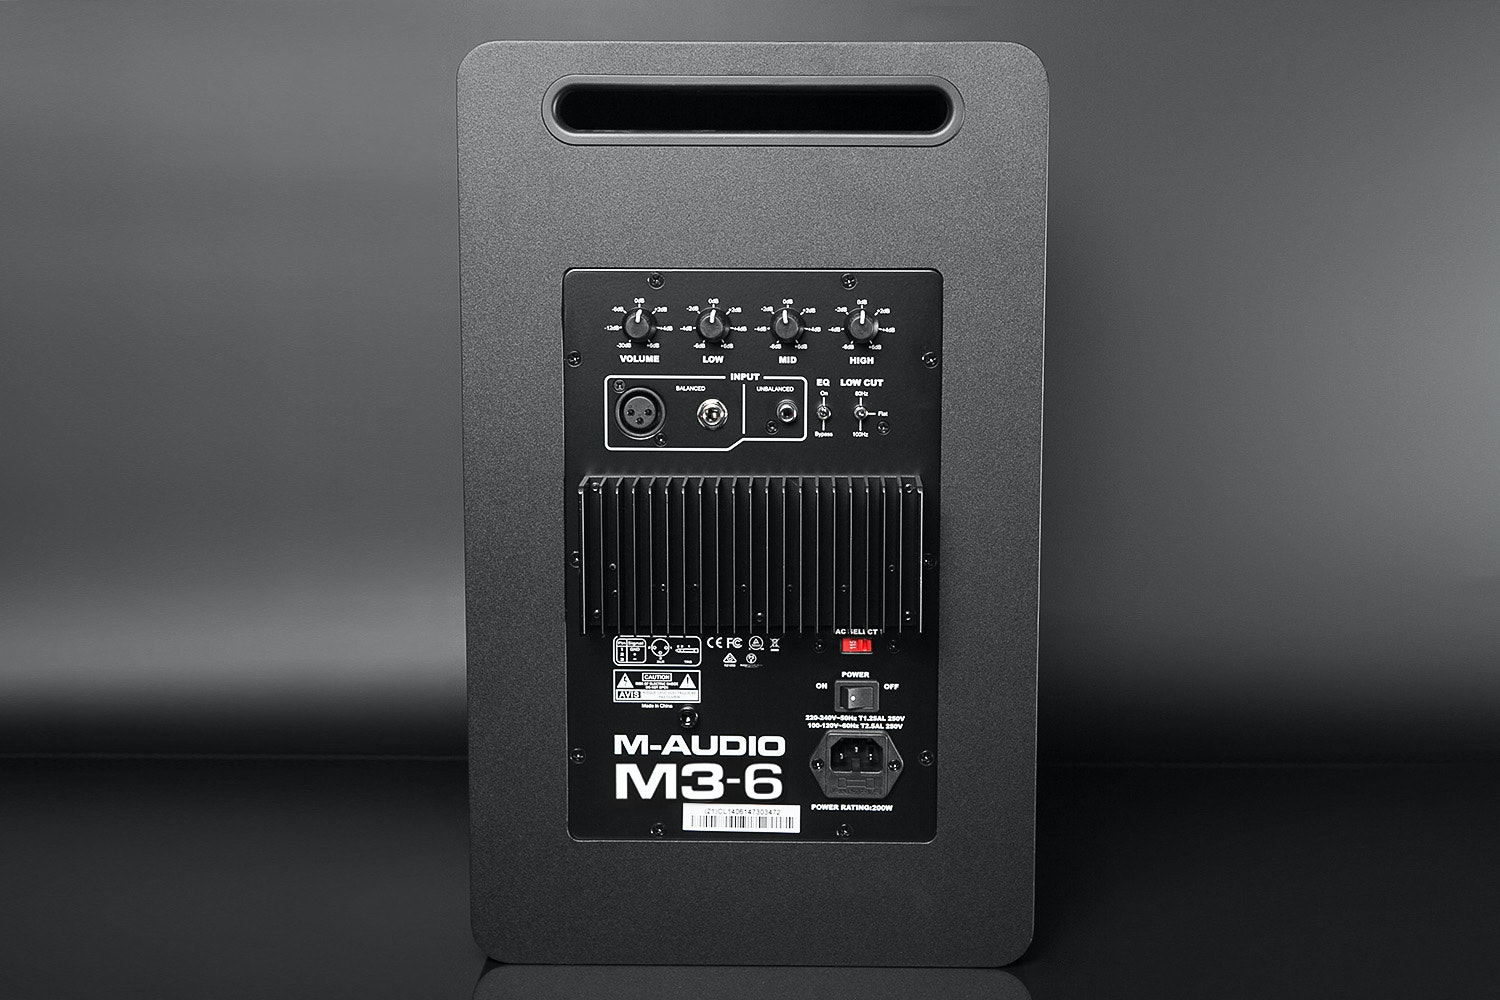 M-Audio M3-6 and M3-8 Three-Way Studio Monitor